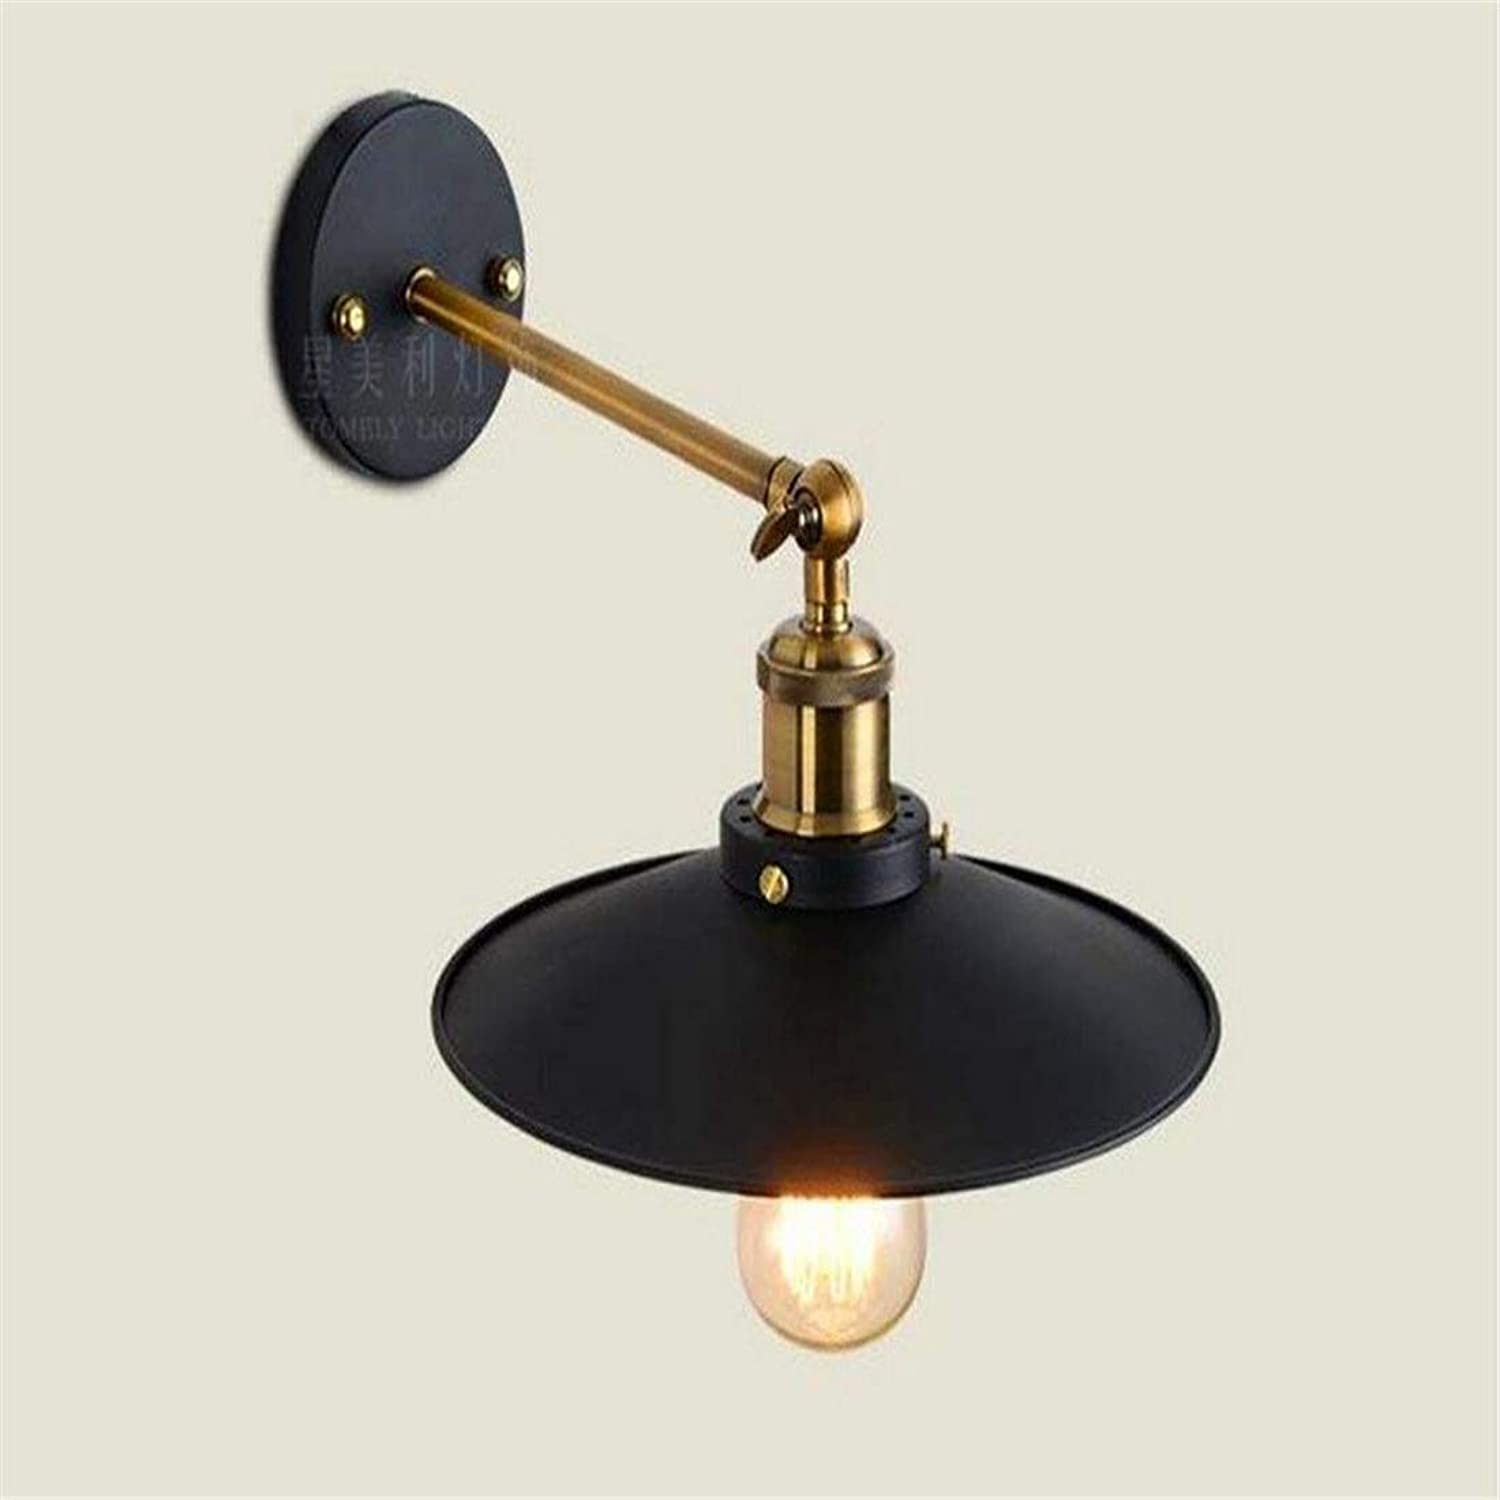 Antique Wall Lamp Iron Wall Lights Should Be 22Cm Living Room Bedroom Corridor Staircase Wall Lamp